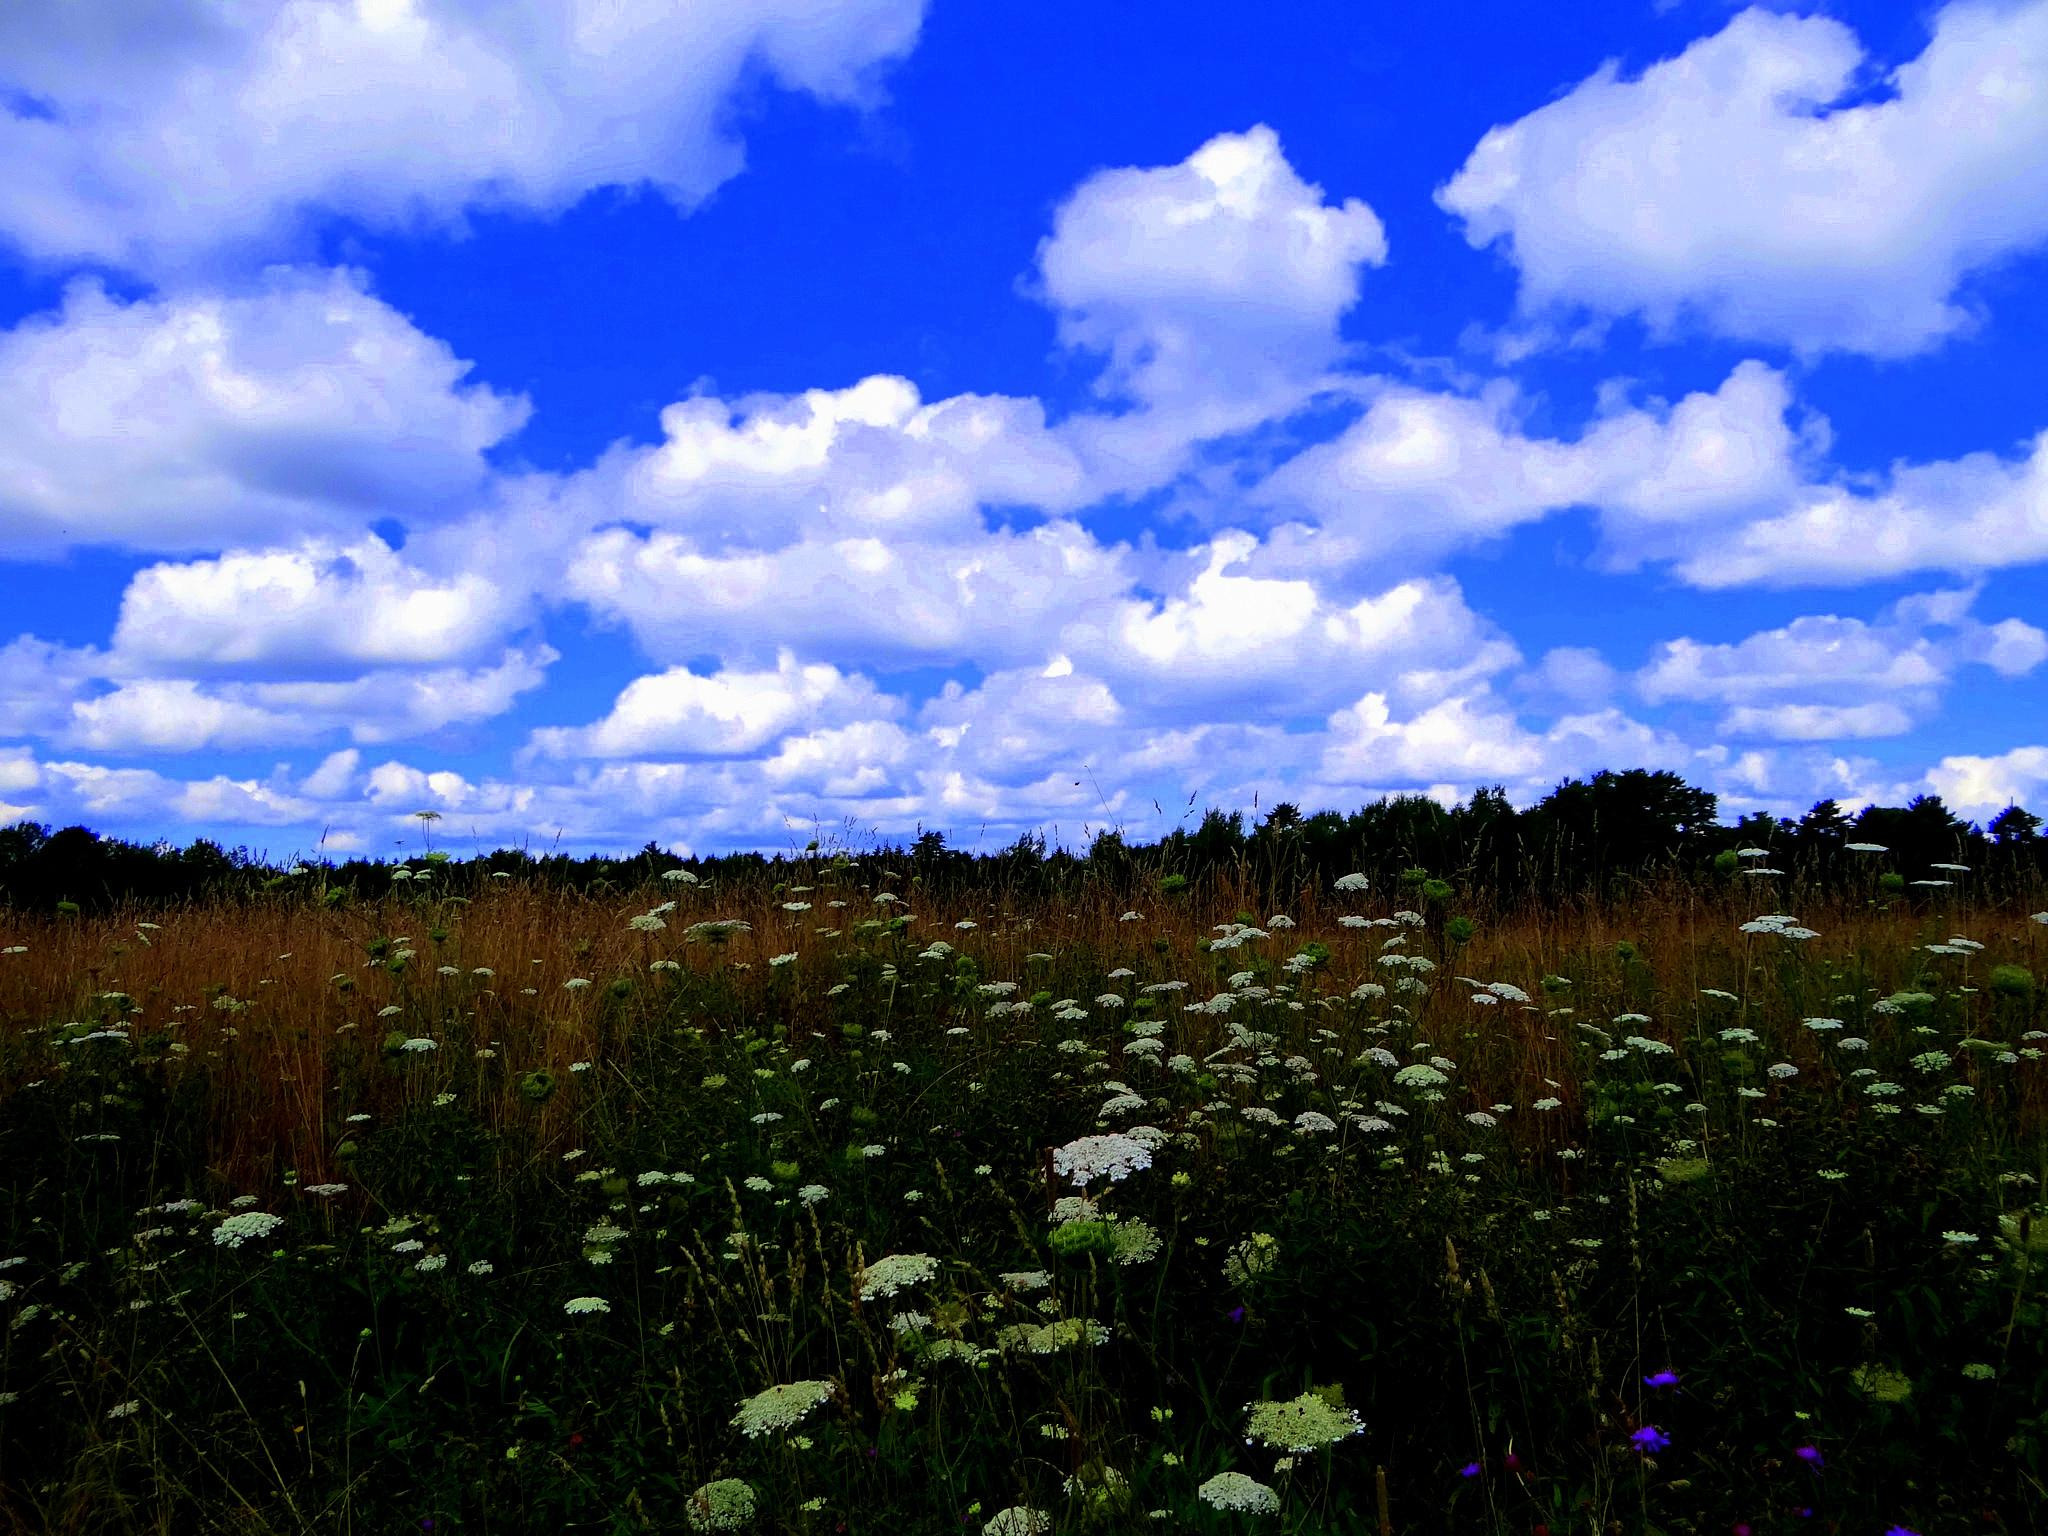 Clouds and Wildflowers by paulette.king